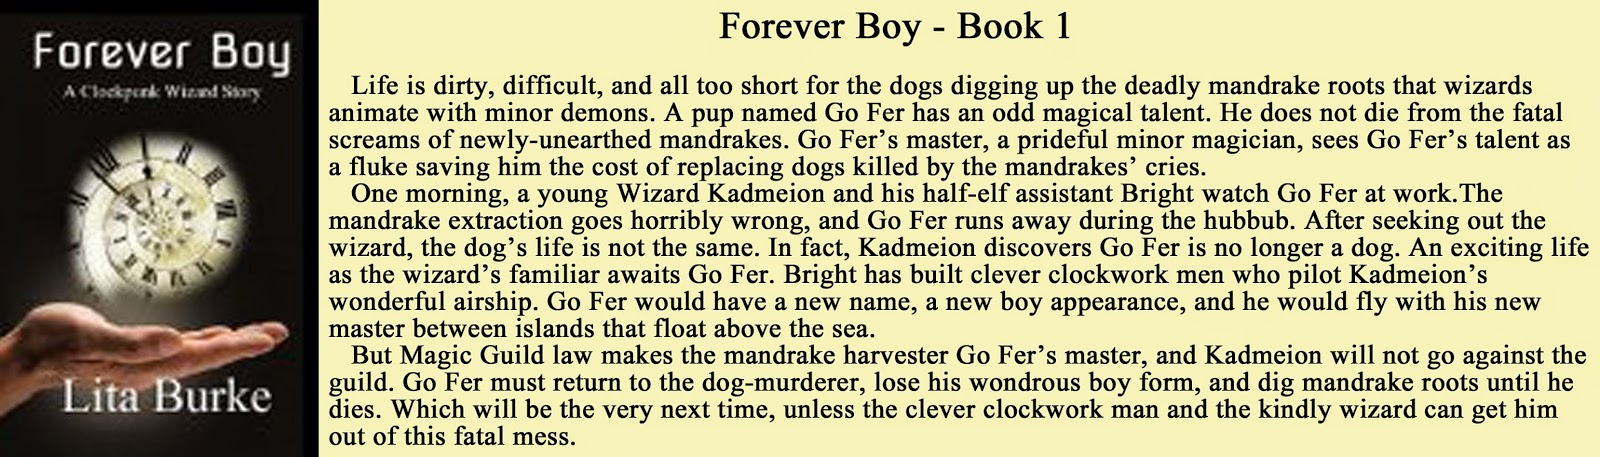 http://www.amazon.com/Forever-Boy-Clockpunk-Wizard-Book-ebook/dp/B009XTVF9E/ref=la_B006QD2GHK_1_2?s=books&ie=UTF8&qid=1408531610&sr=1-2